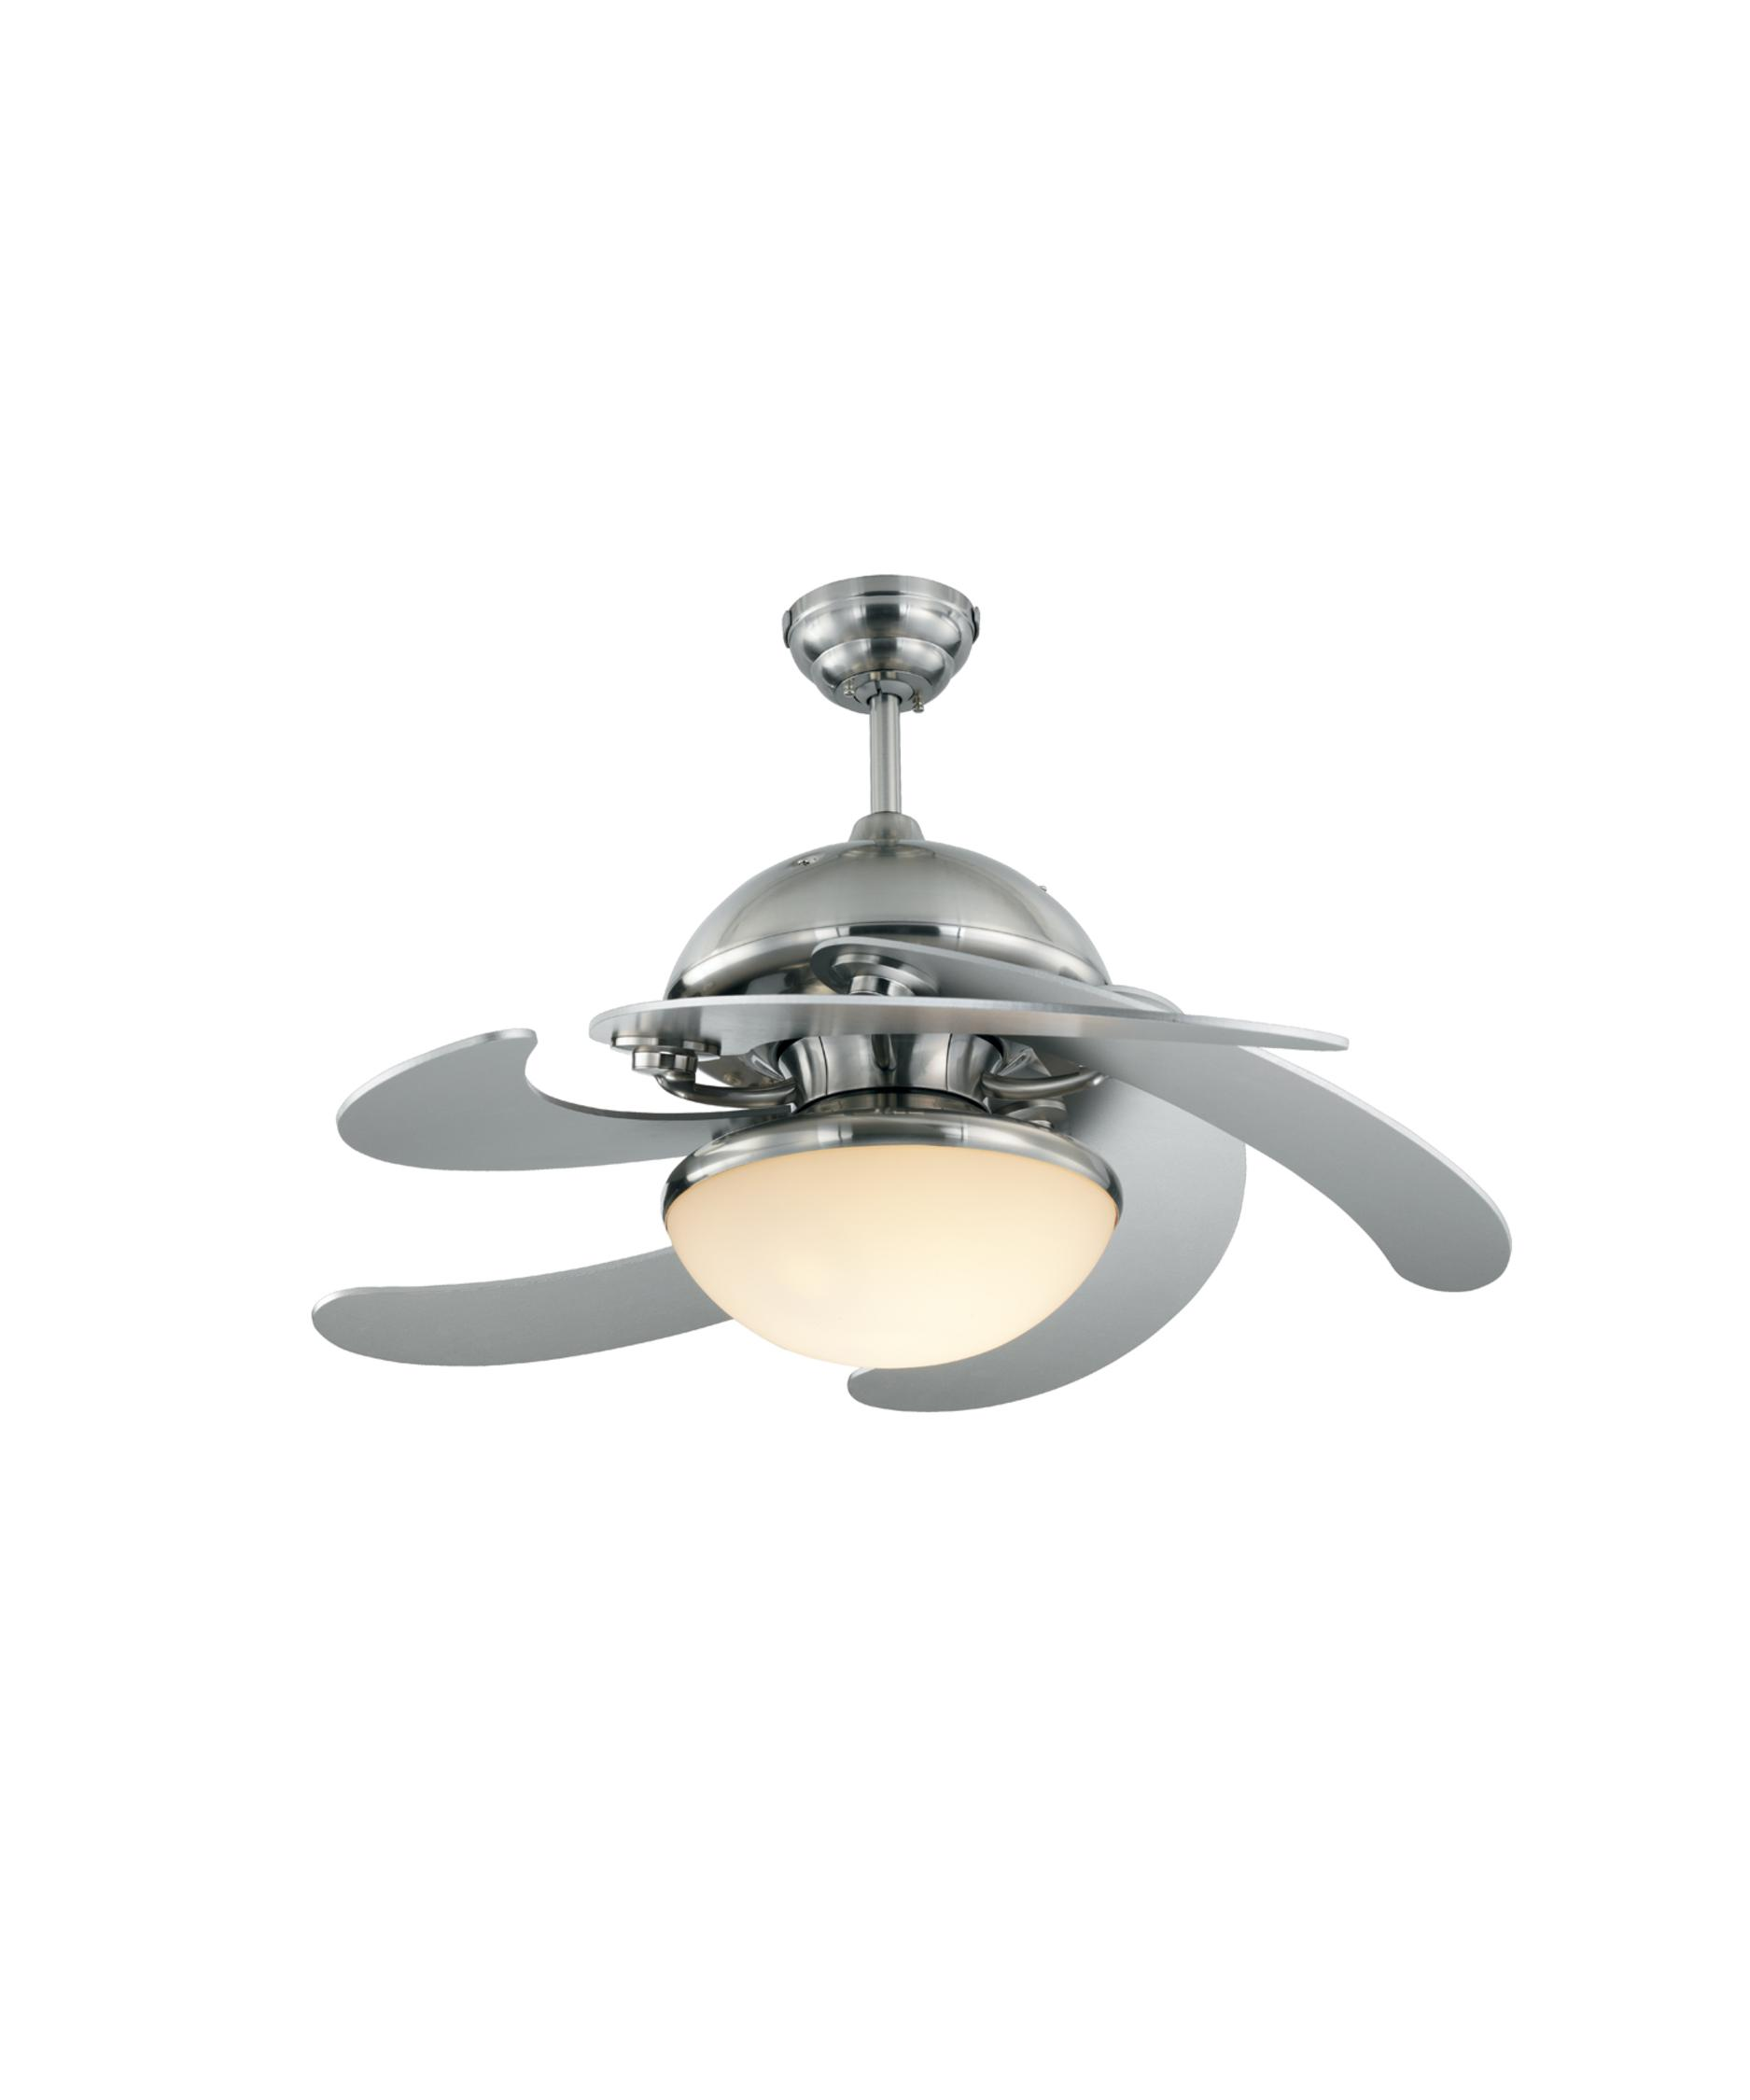 Monte Carlo Ceiling Fan Light Kit: Shown in Brushed Steel finish and Matte Opal glass,Lighting